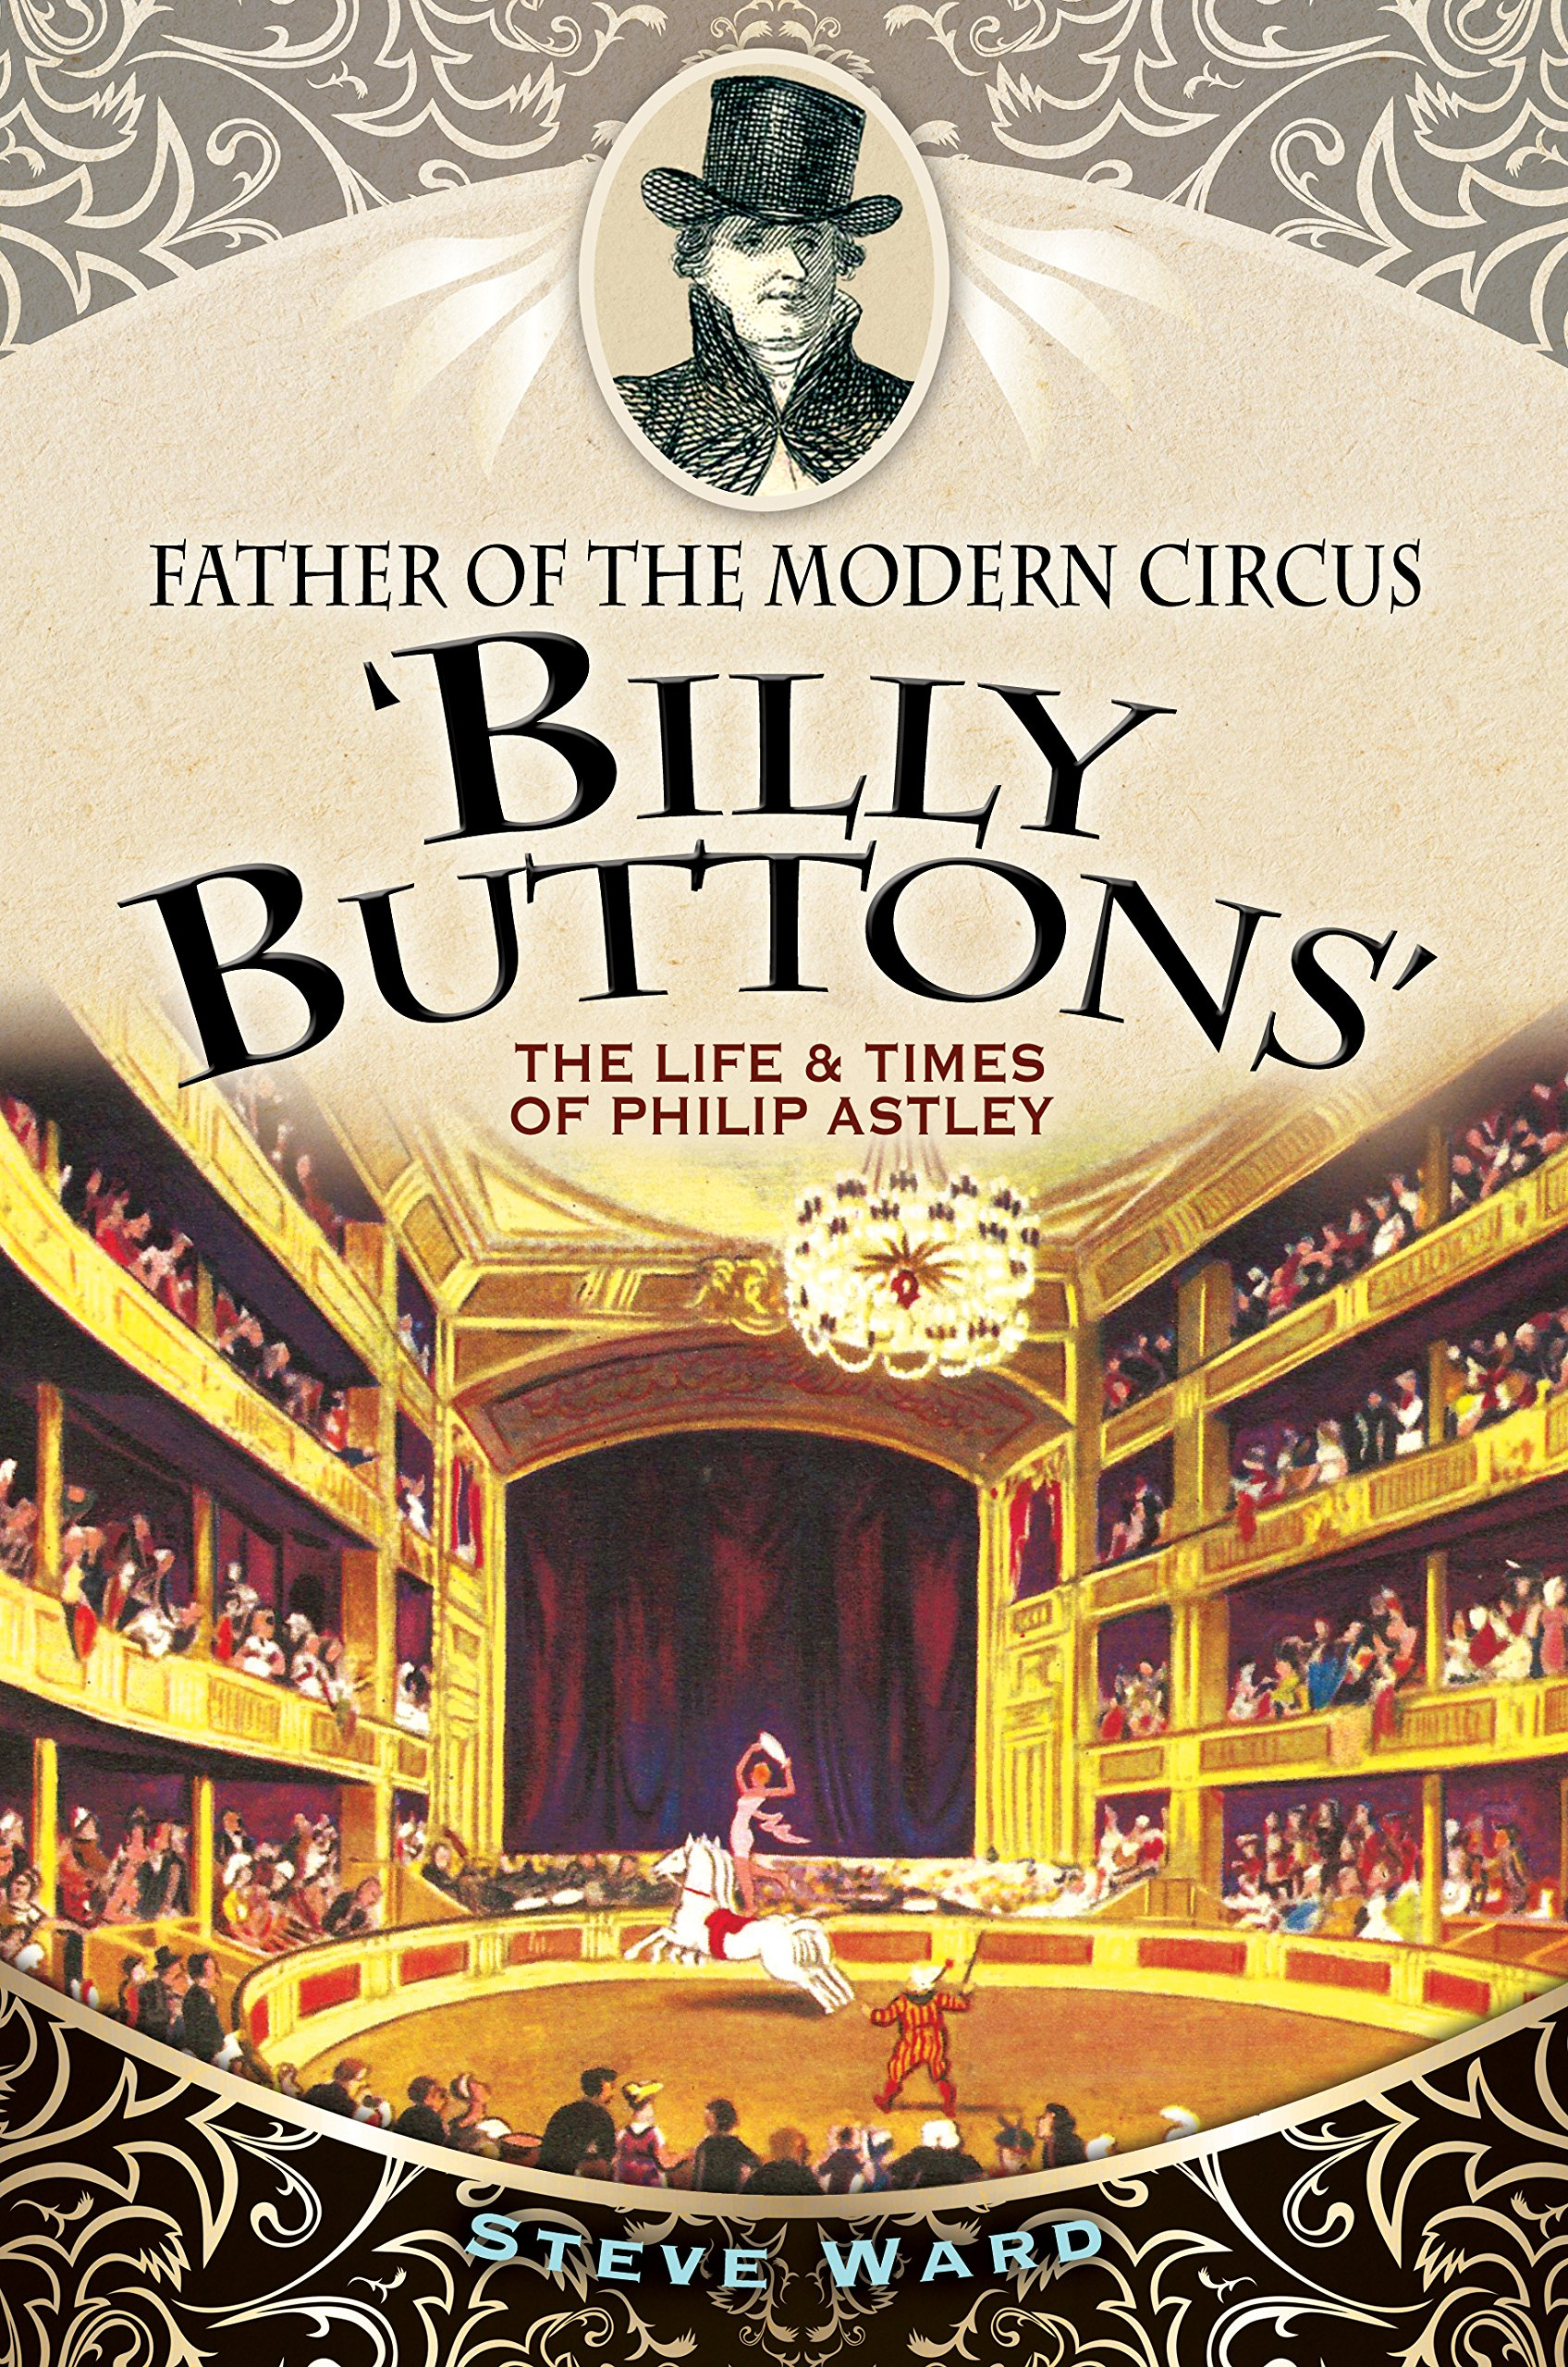 Download Father of the Modern Circus 'Billy Buttons': The Life & Times of Philip Astley ebook